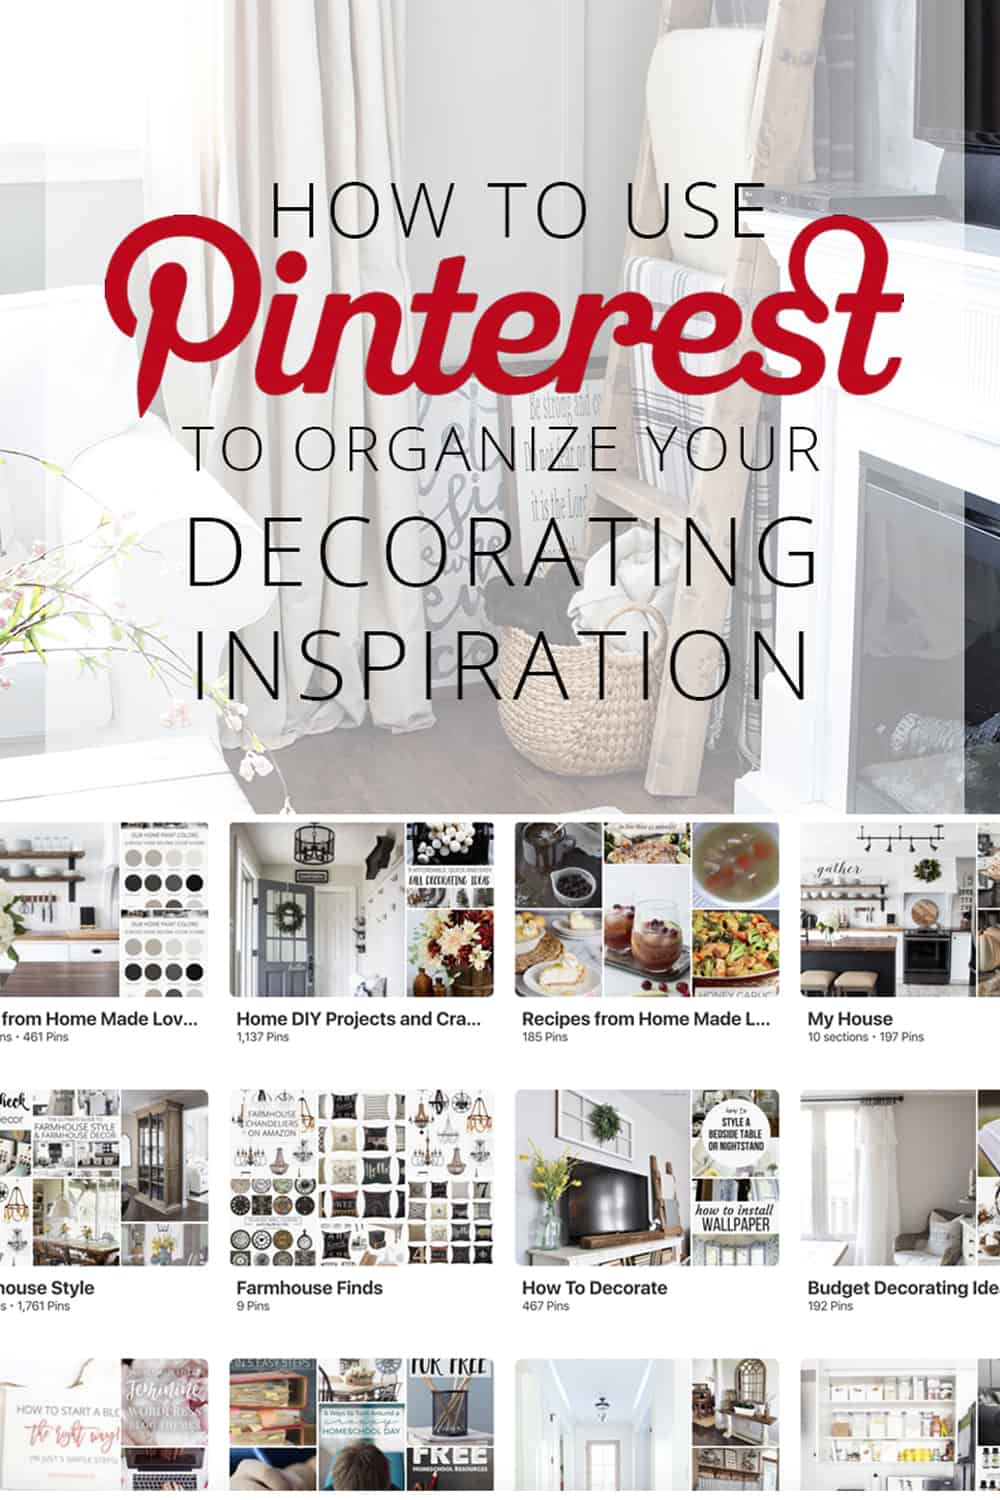 How to Use Pinterest to Organize Your Decorating Inspiration pin